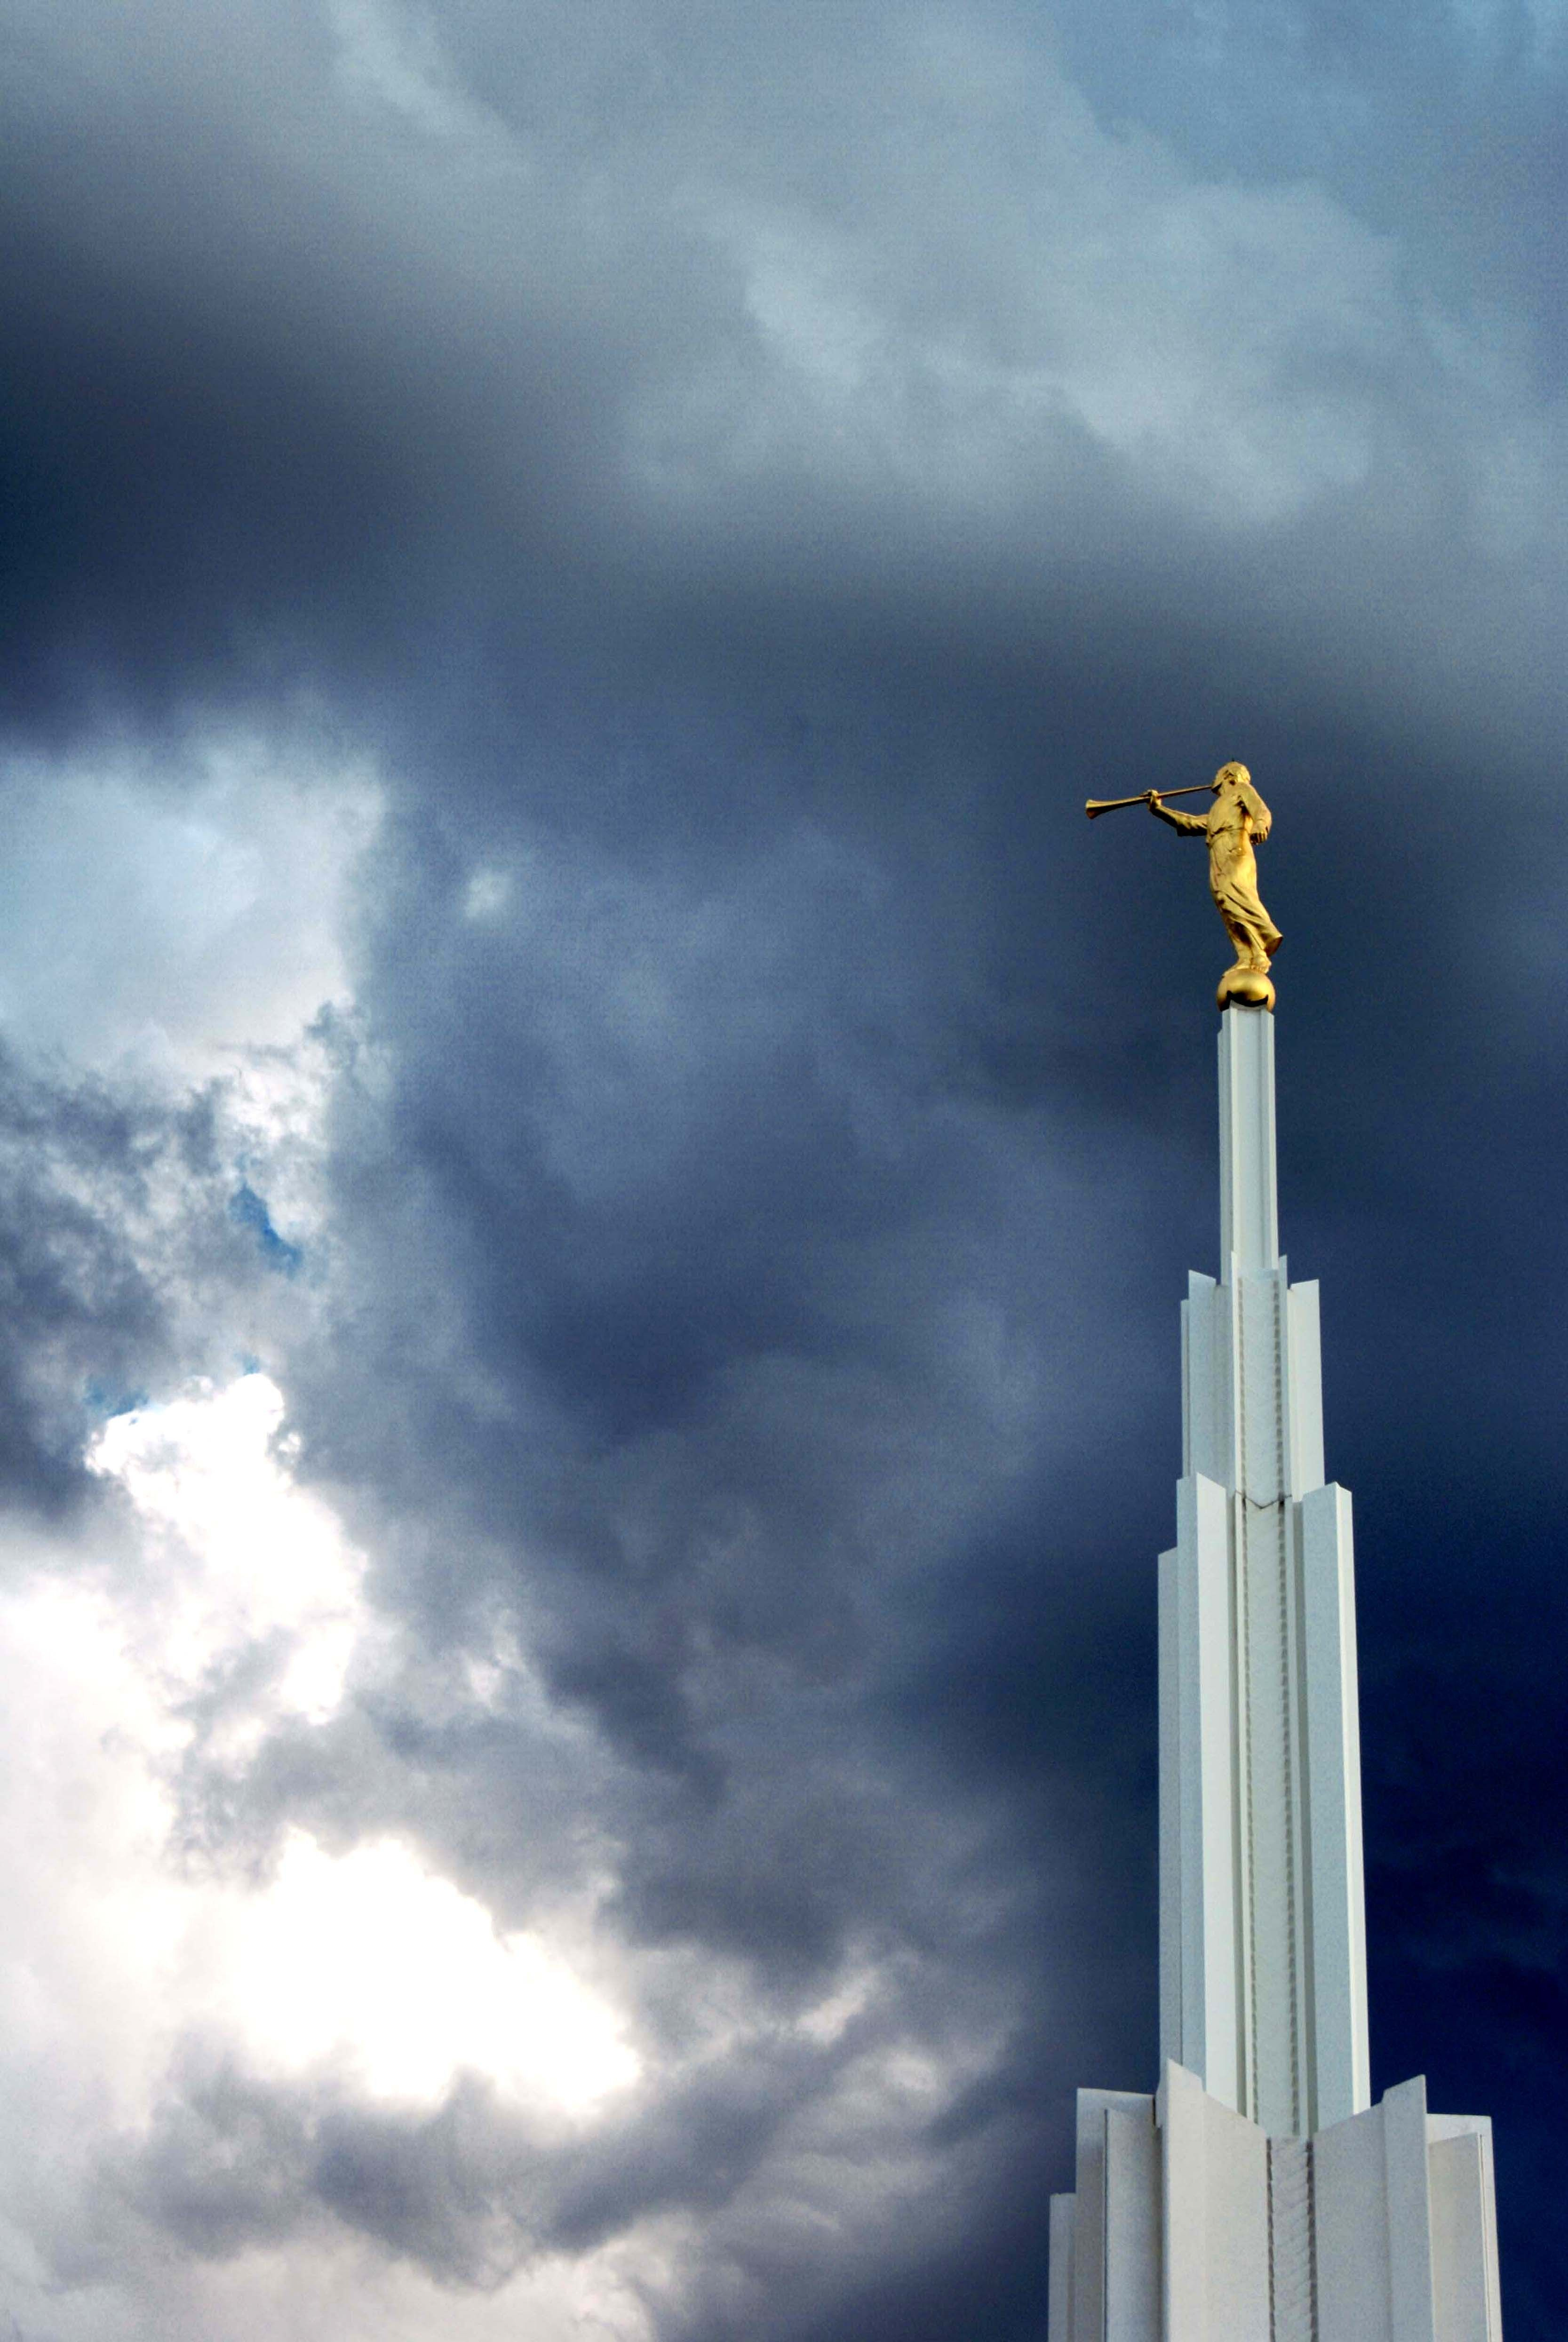 The angel Moroni stands on top of the spire of the Denver Colorado Temple.